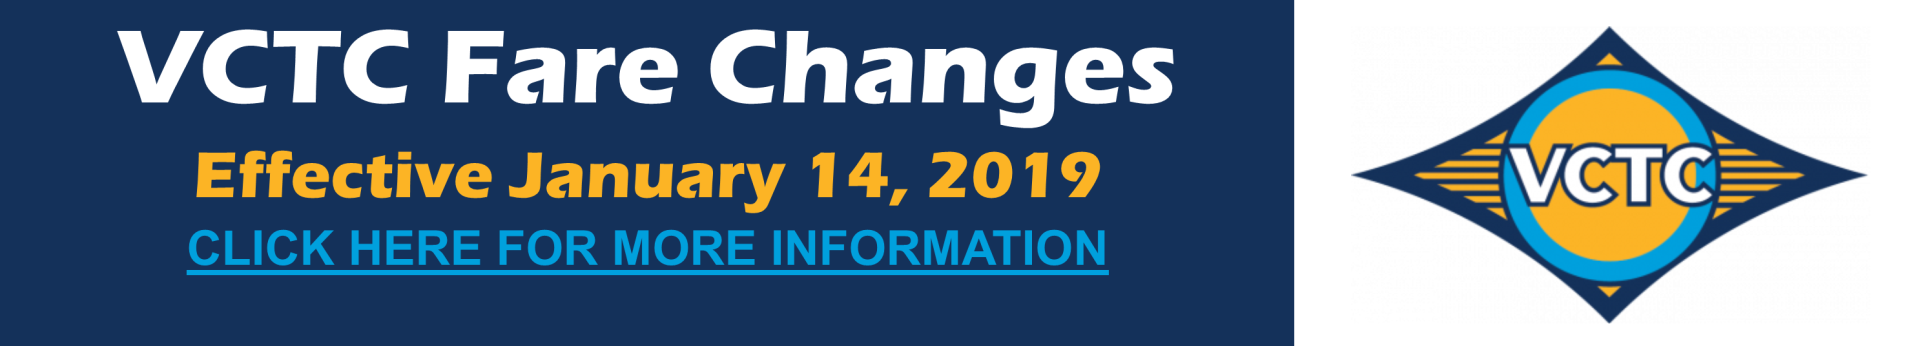 VCTC Fare Changes